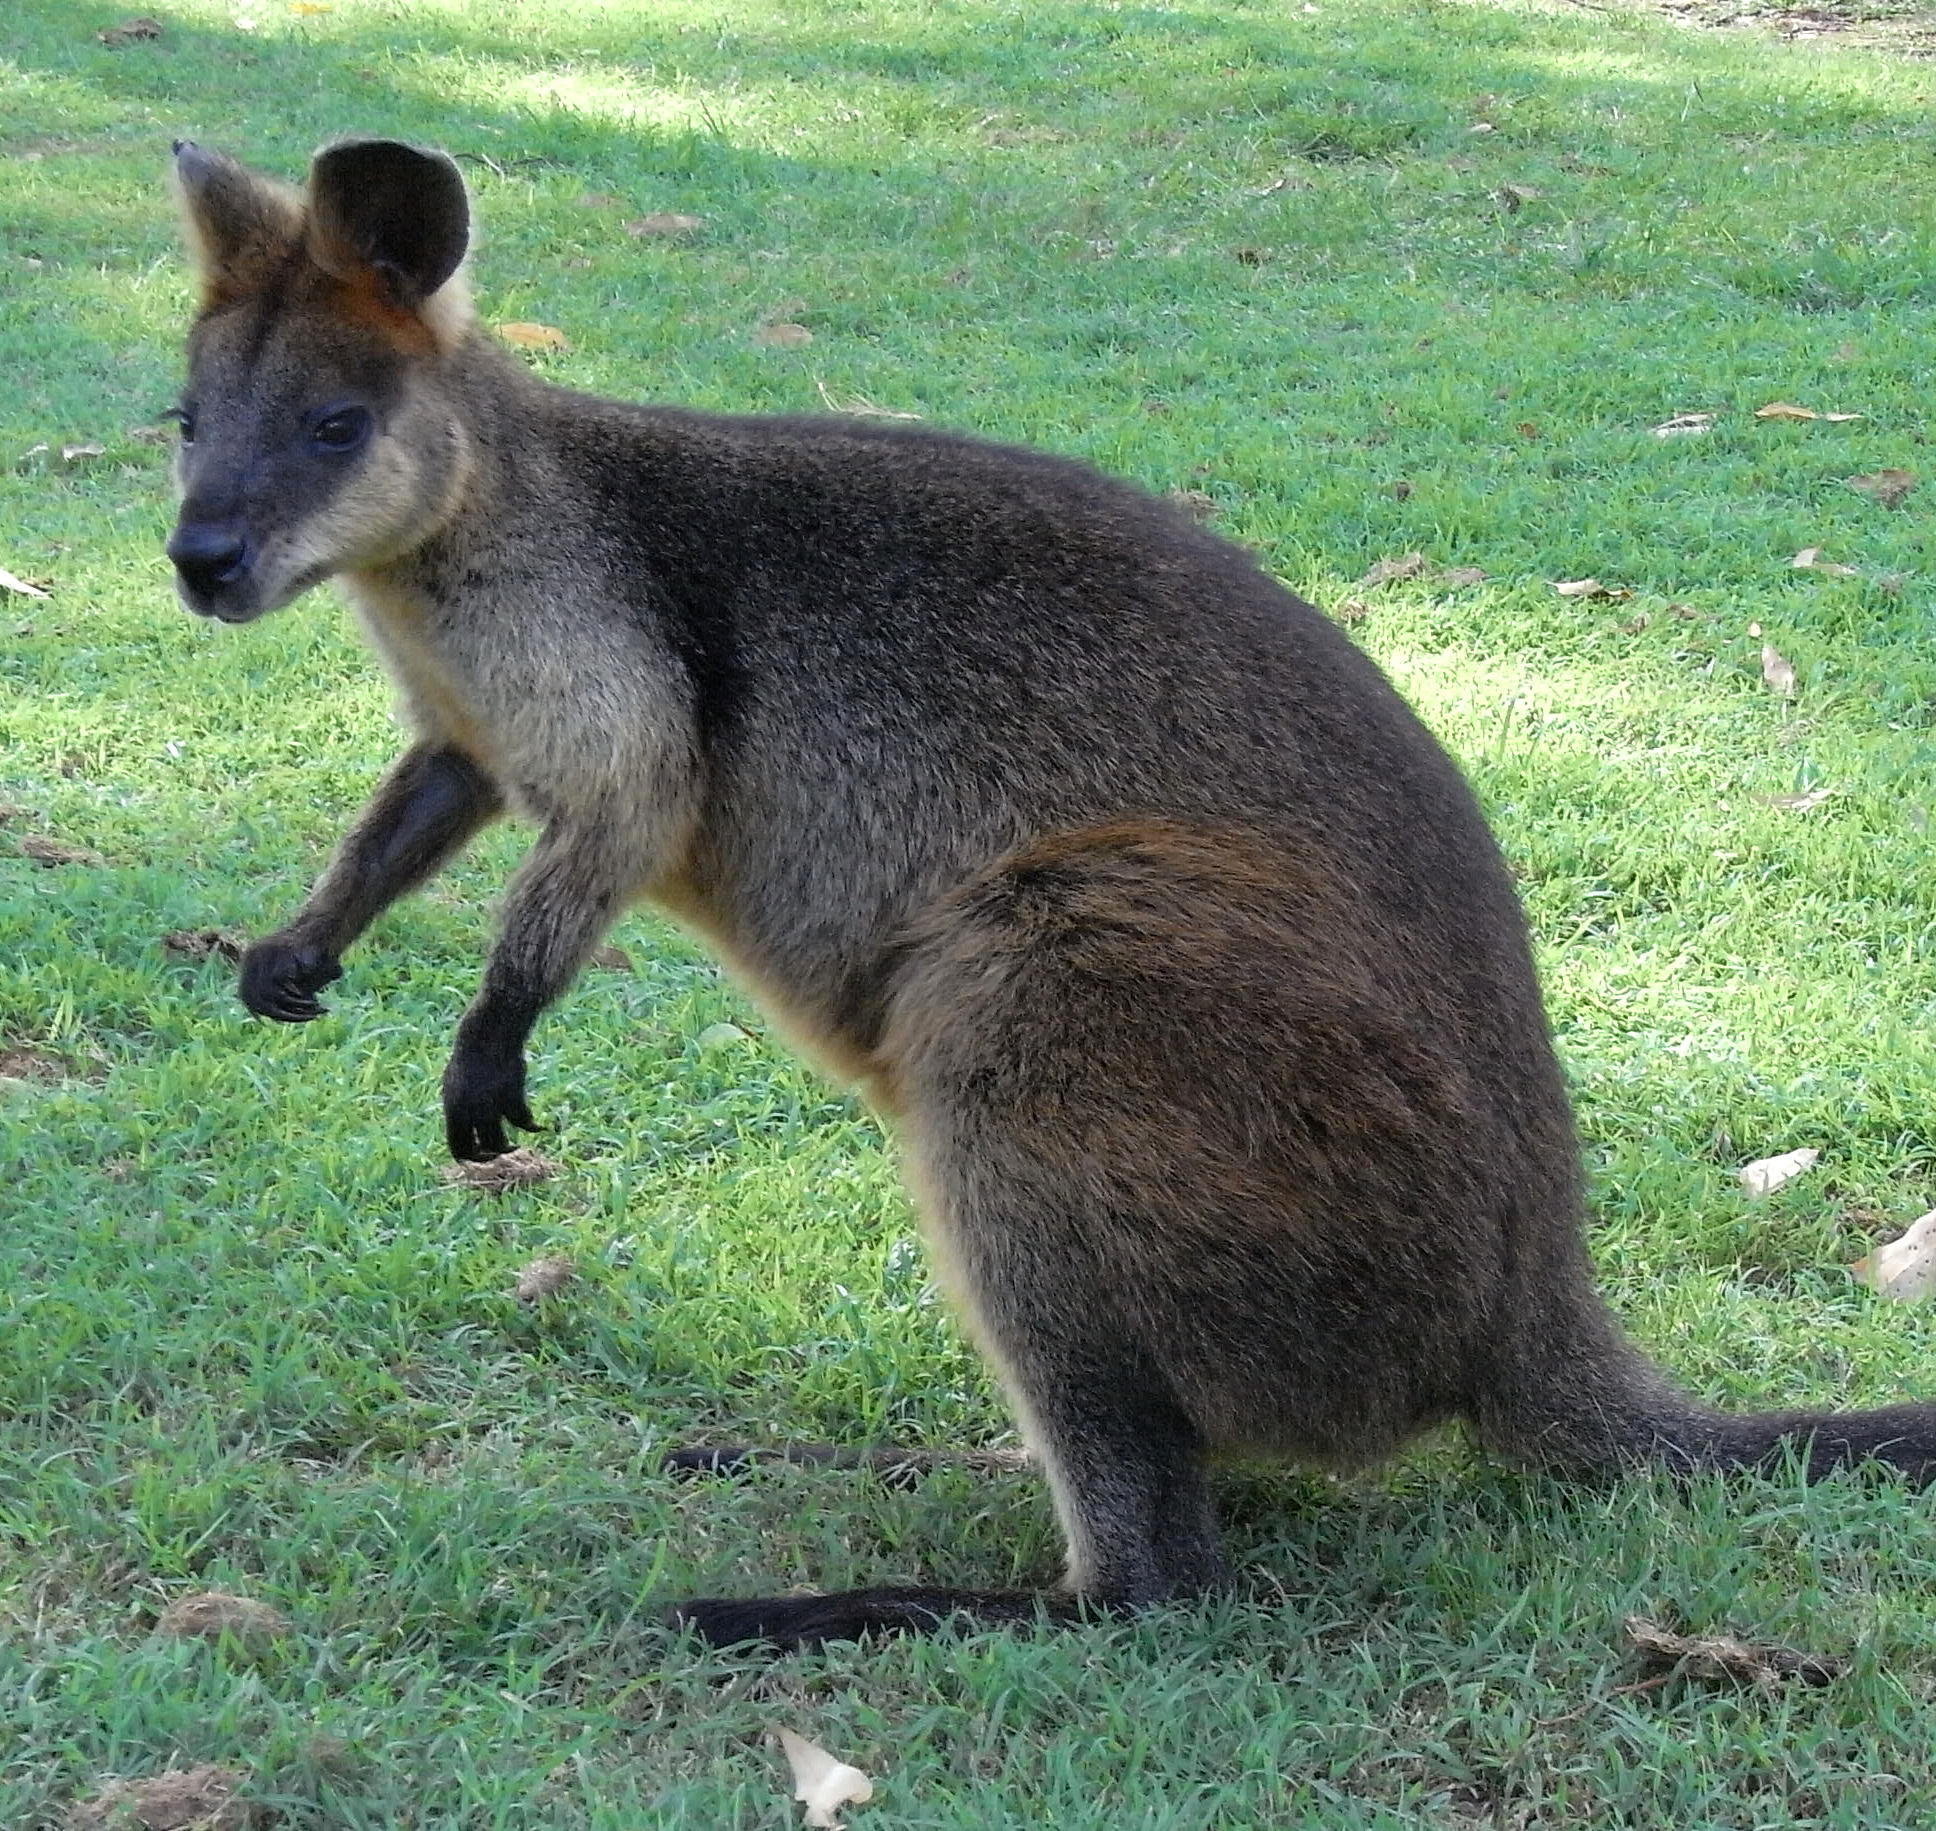 File:Red Necked_Wallaby_Side on Imagenes De Animales Para Colorear